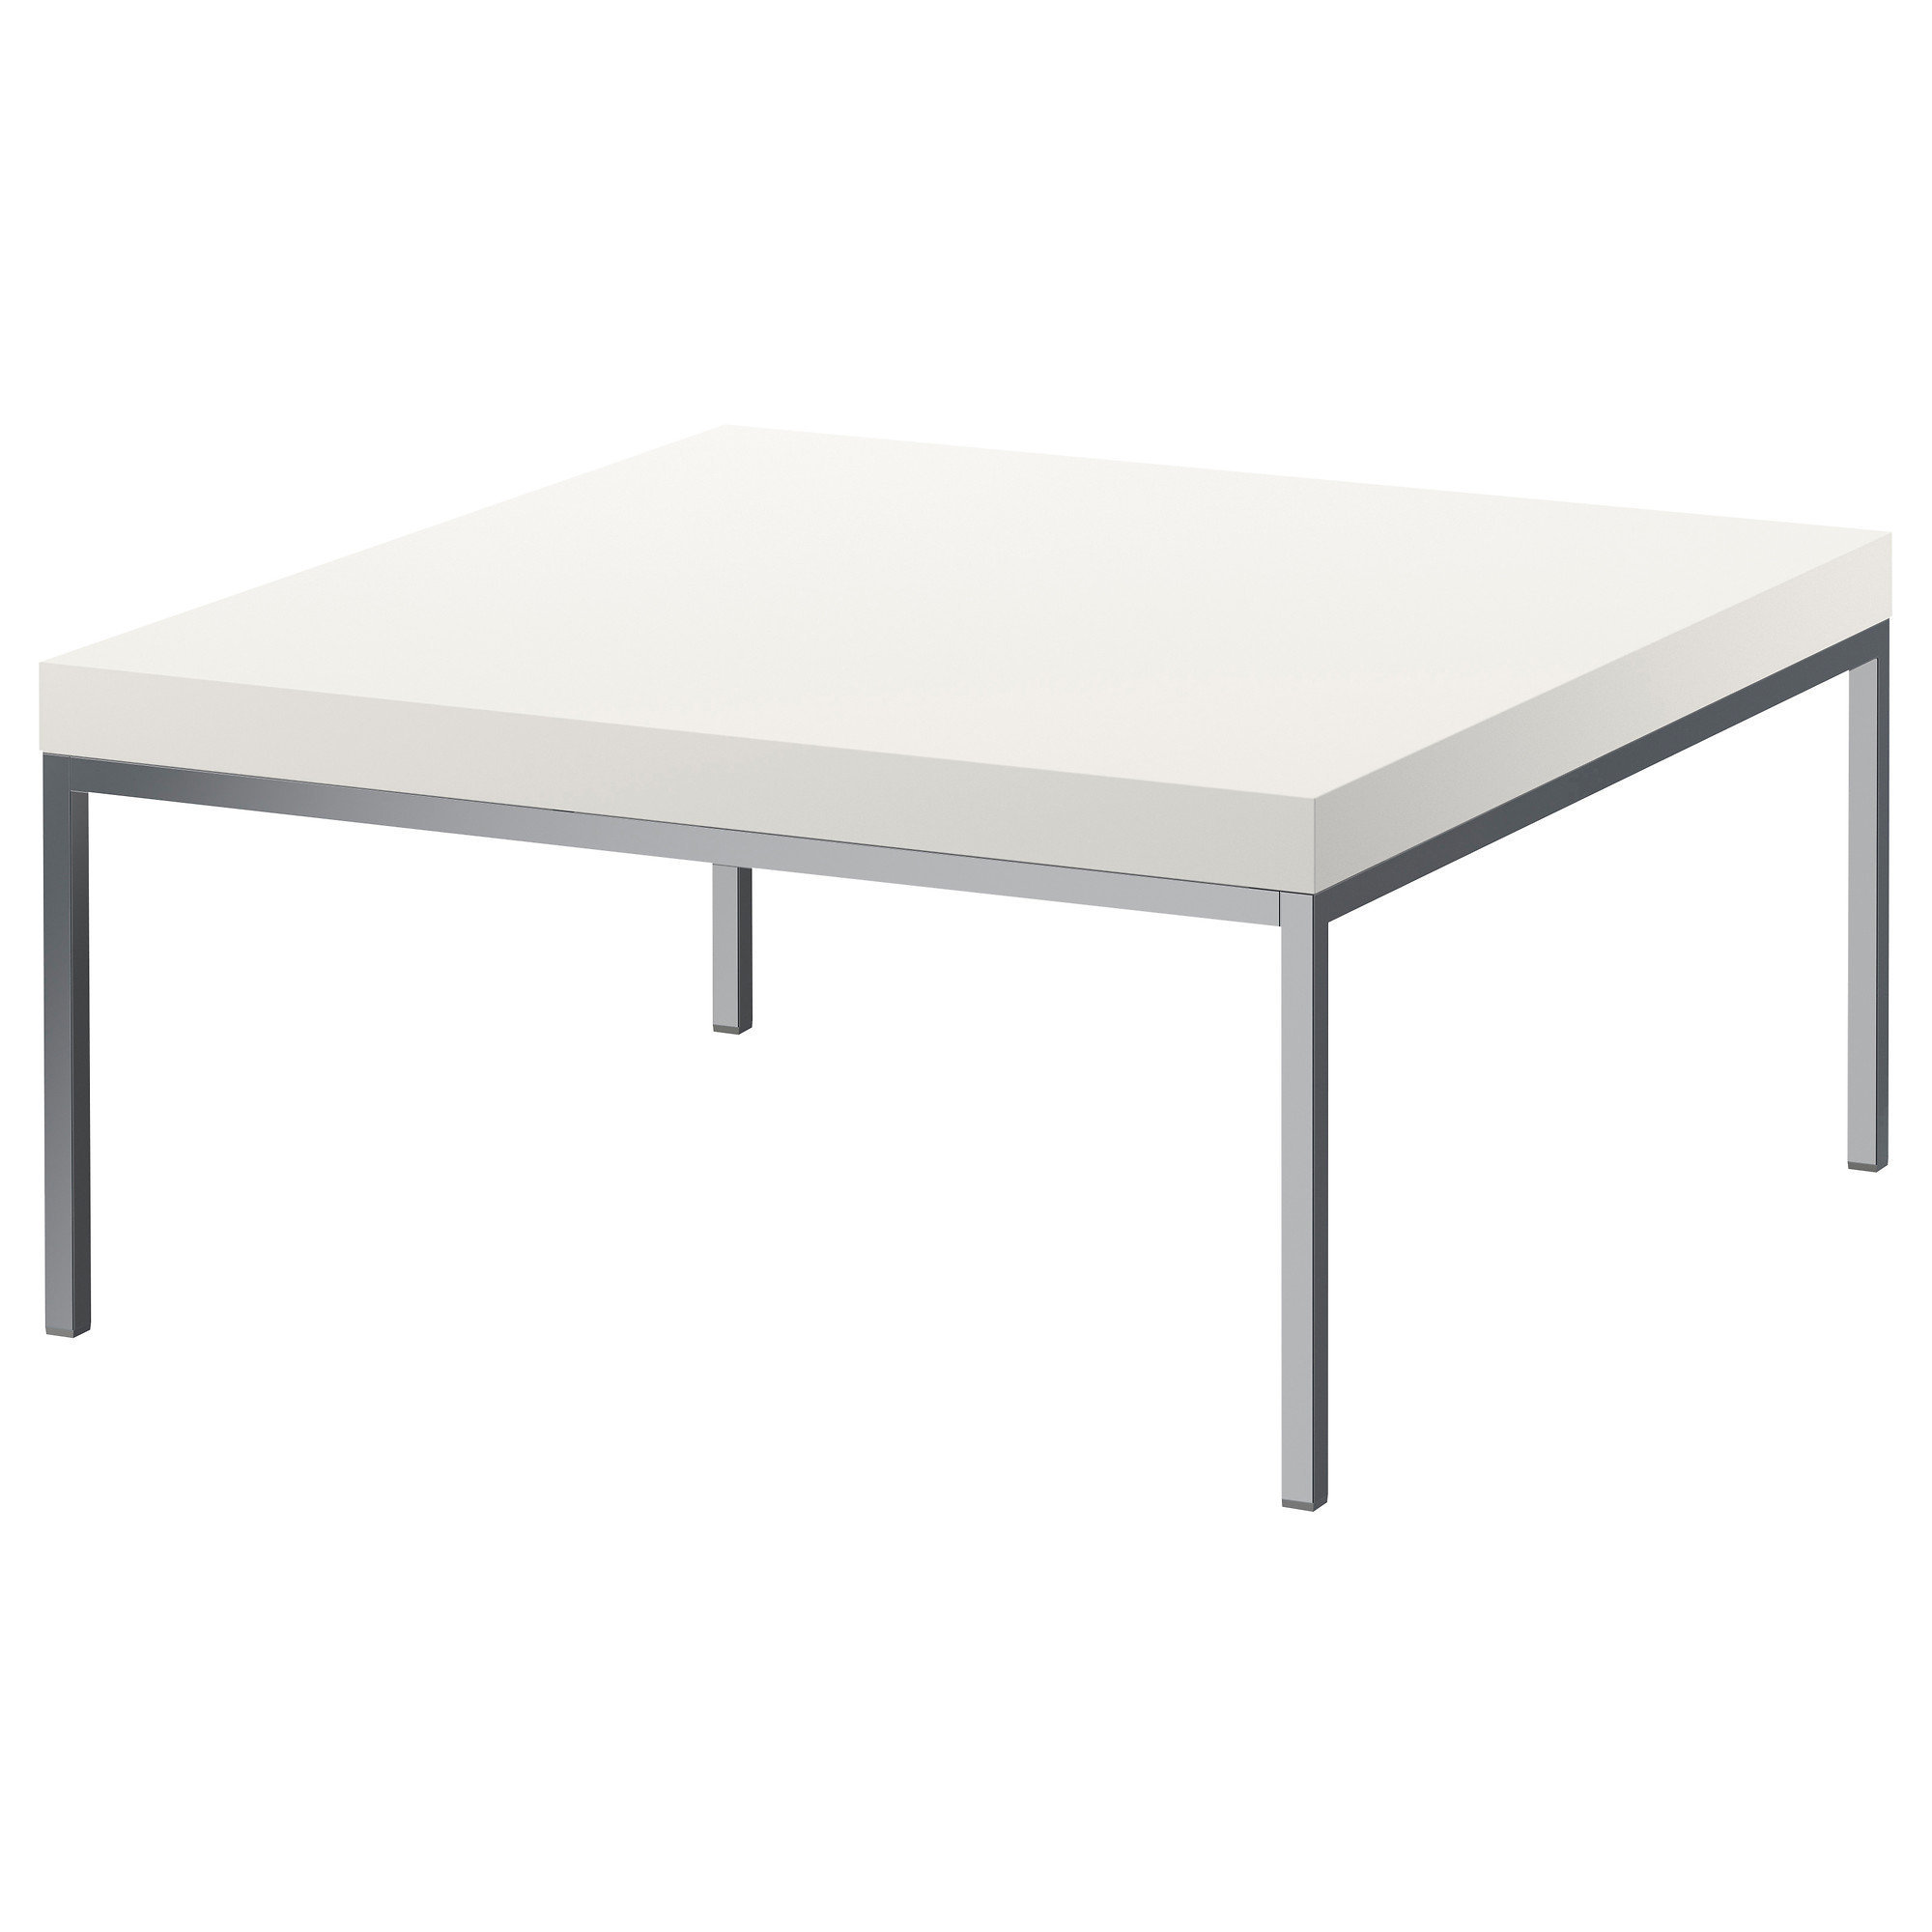 KLUBBO Coffee Table - White - IKEA From IKEA